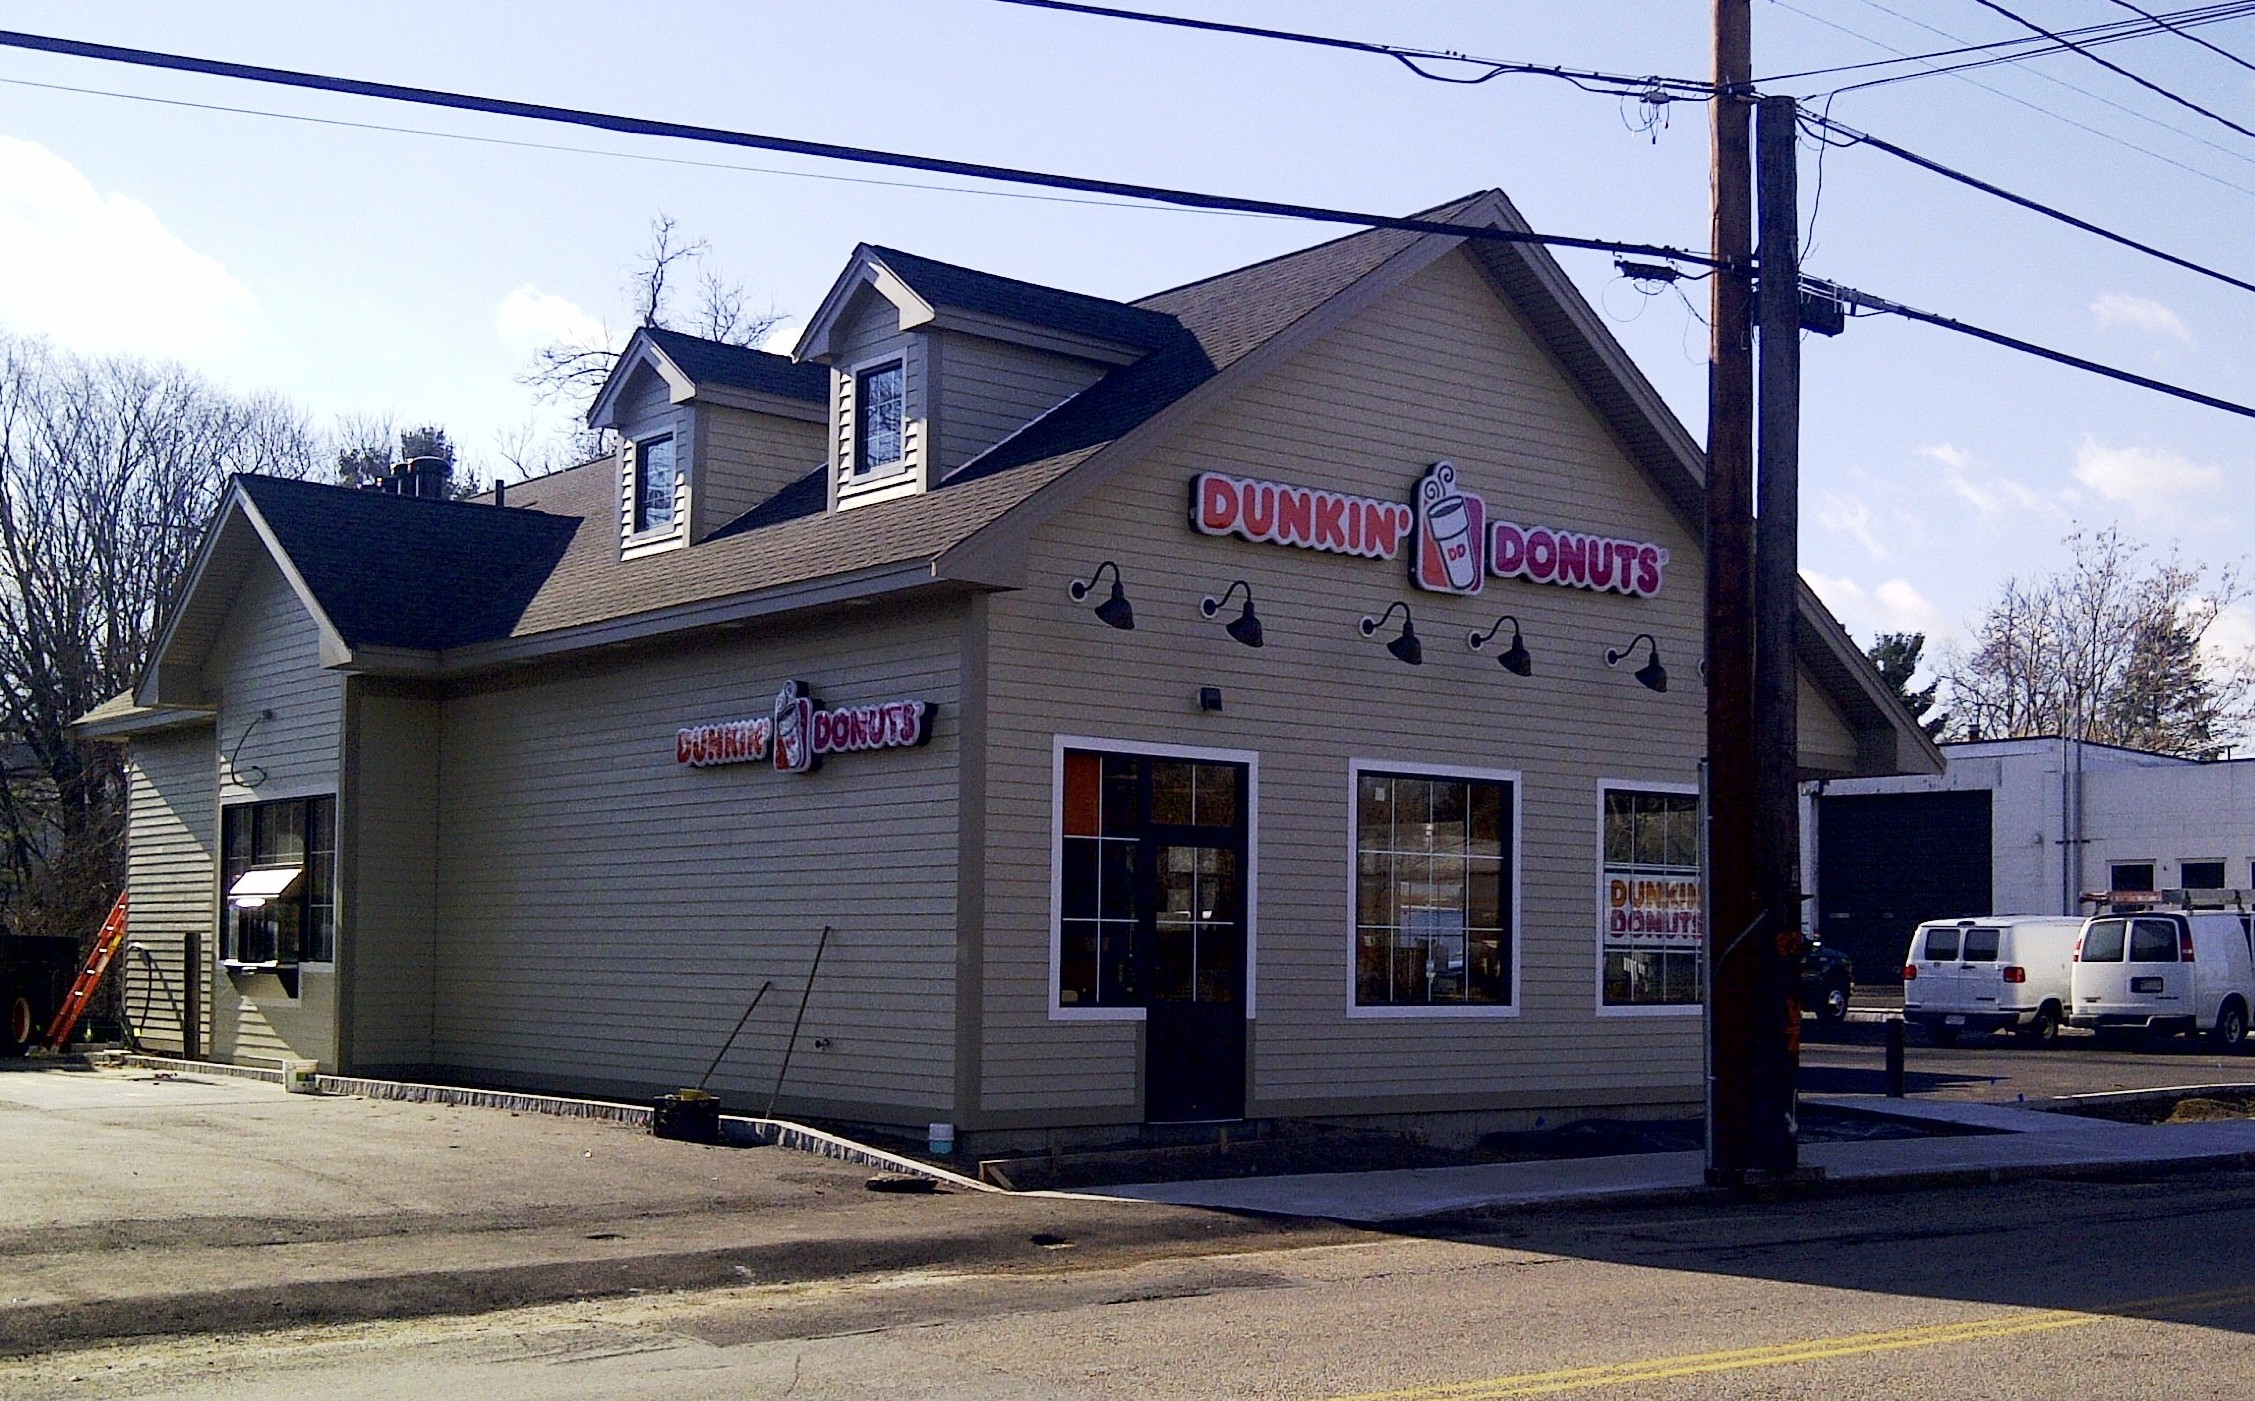 Coffee/Donut Shops - RMA has provided traffic engineering and consulting services to aid in the permitting of a number of coffee/donut shops in communities throughout Massachusetts. These include Dunkin Donuts projects in Braintree, Dracut, Grafton, Kingston, Millbury, Peabody, Plymouth, and Worcester; as well as Starbucks projects in Burlington, Franklin, Plainville, and Nashua, New Hampshire.